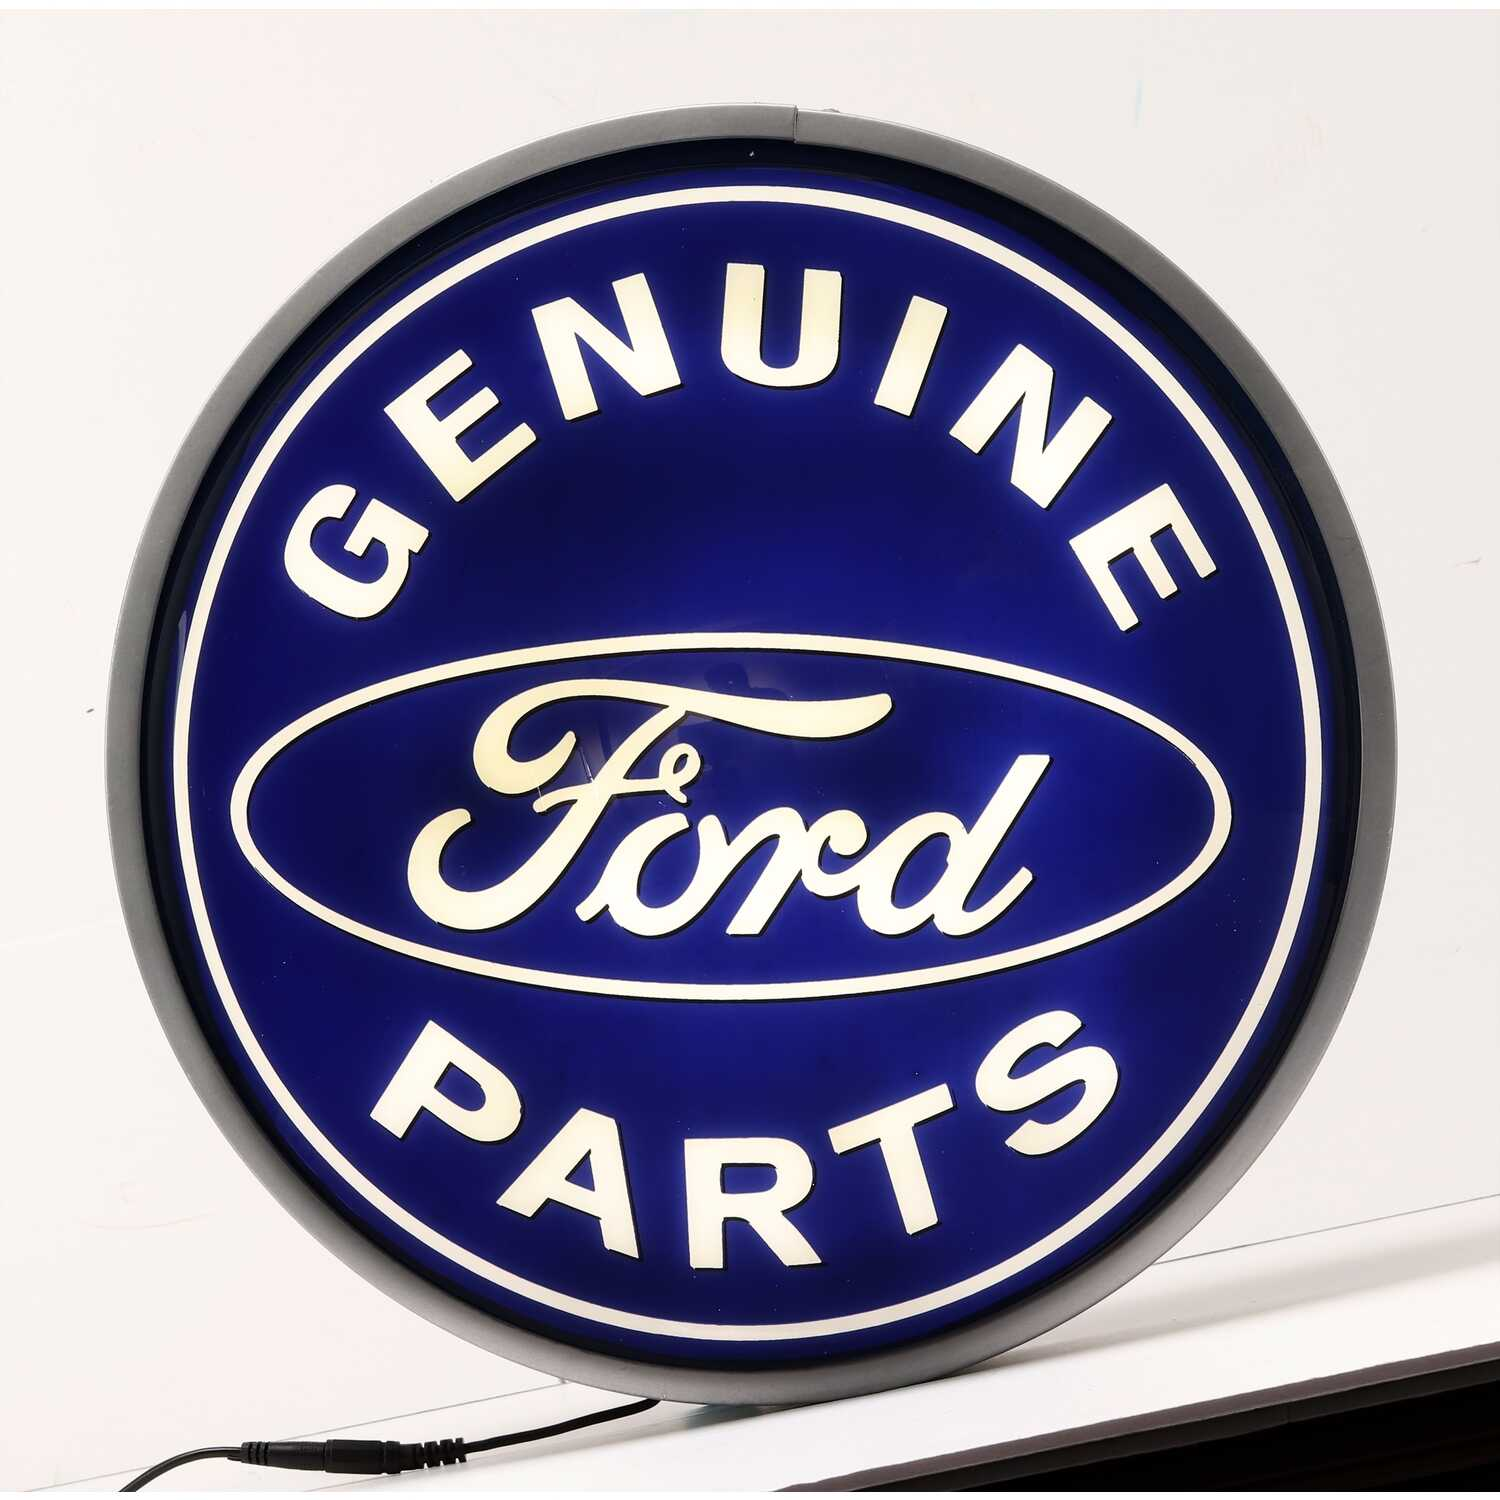 Open Road Brands  Ford  Thermoplastic  Indoor  LED  Illuminated Sign